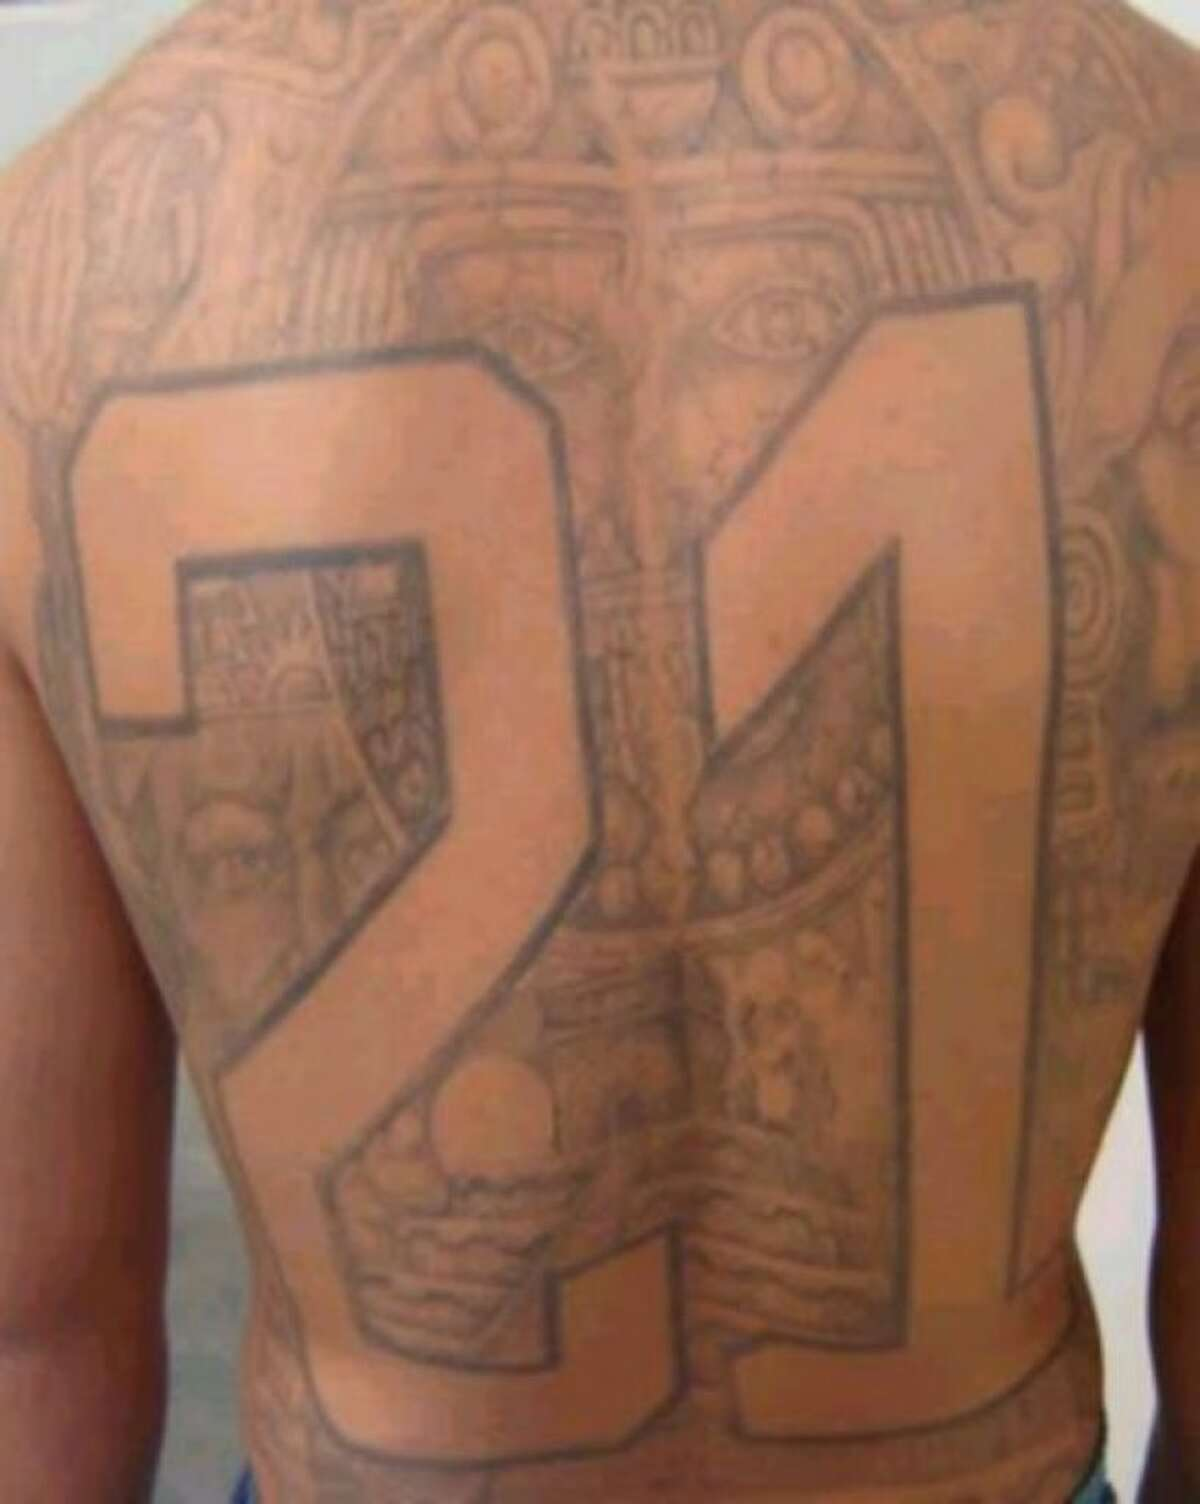 When it comes to tattoos, Barrio Azteca members use the number